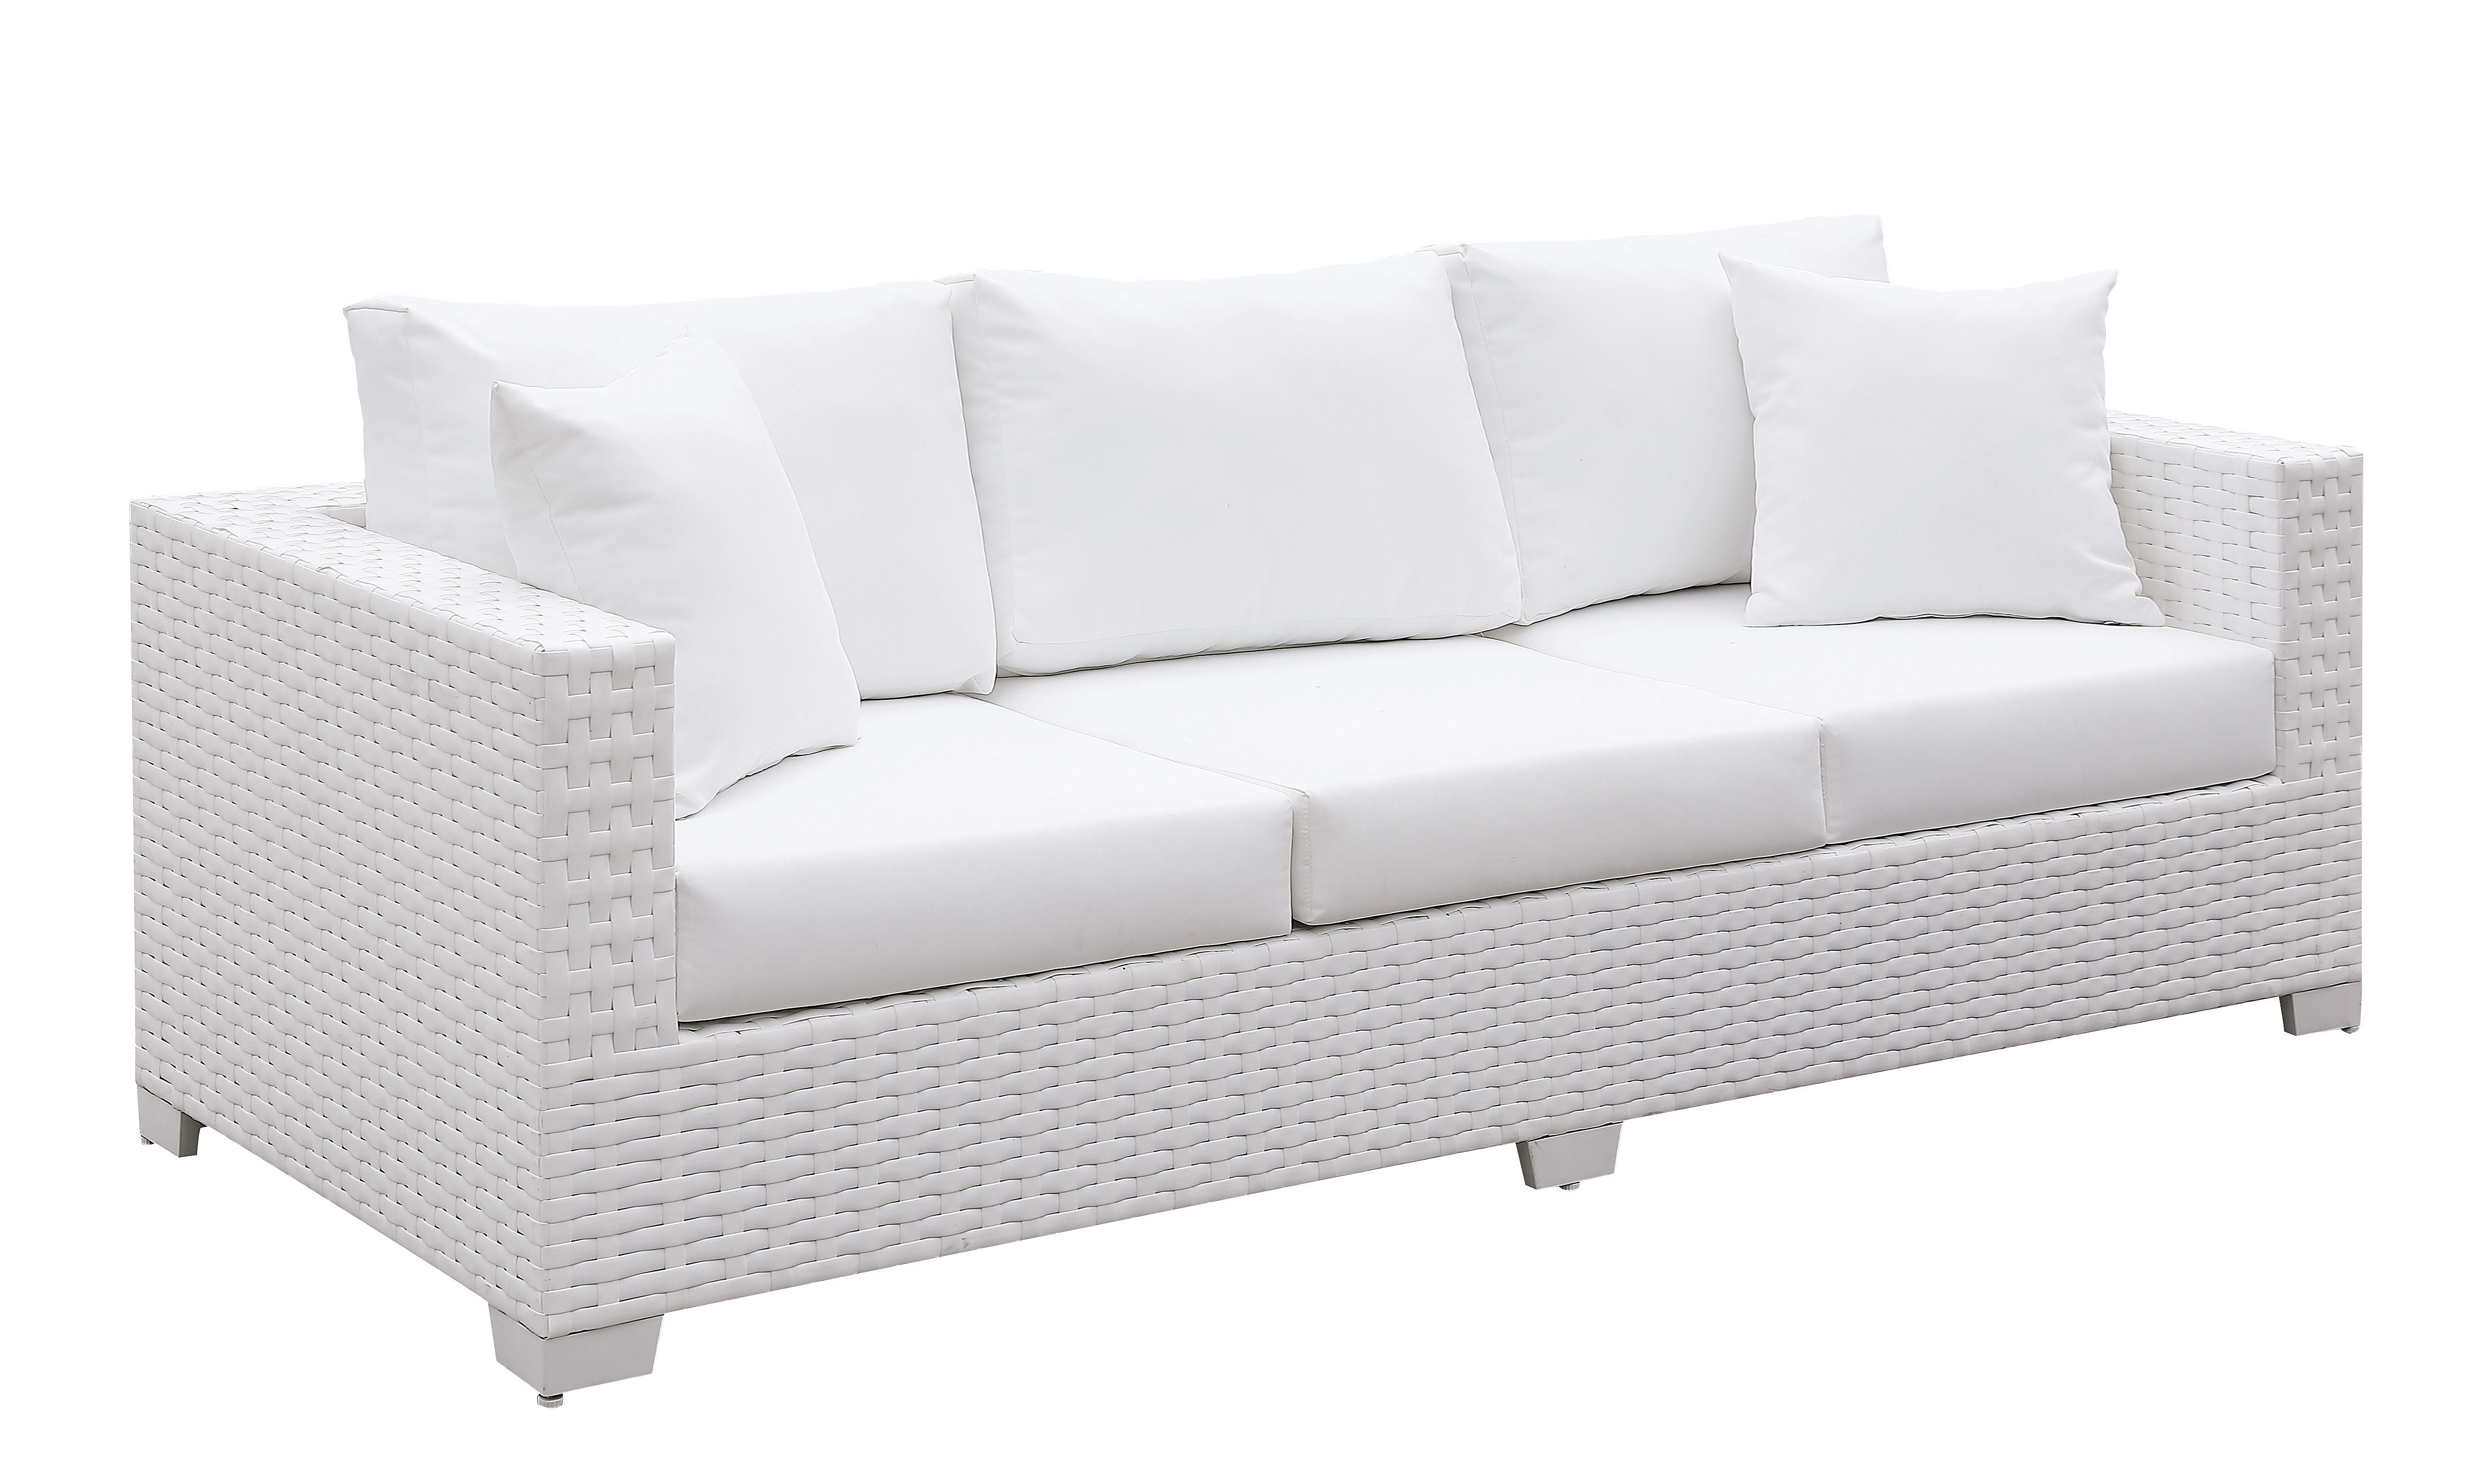 Kuhn Sofa With Cushion Within Current Olu Bamboo Large Round Patio Daybeds With Cushions (View 8 of 20)